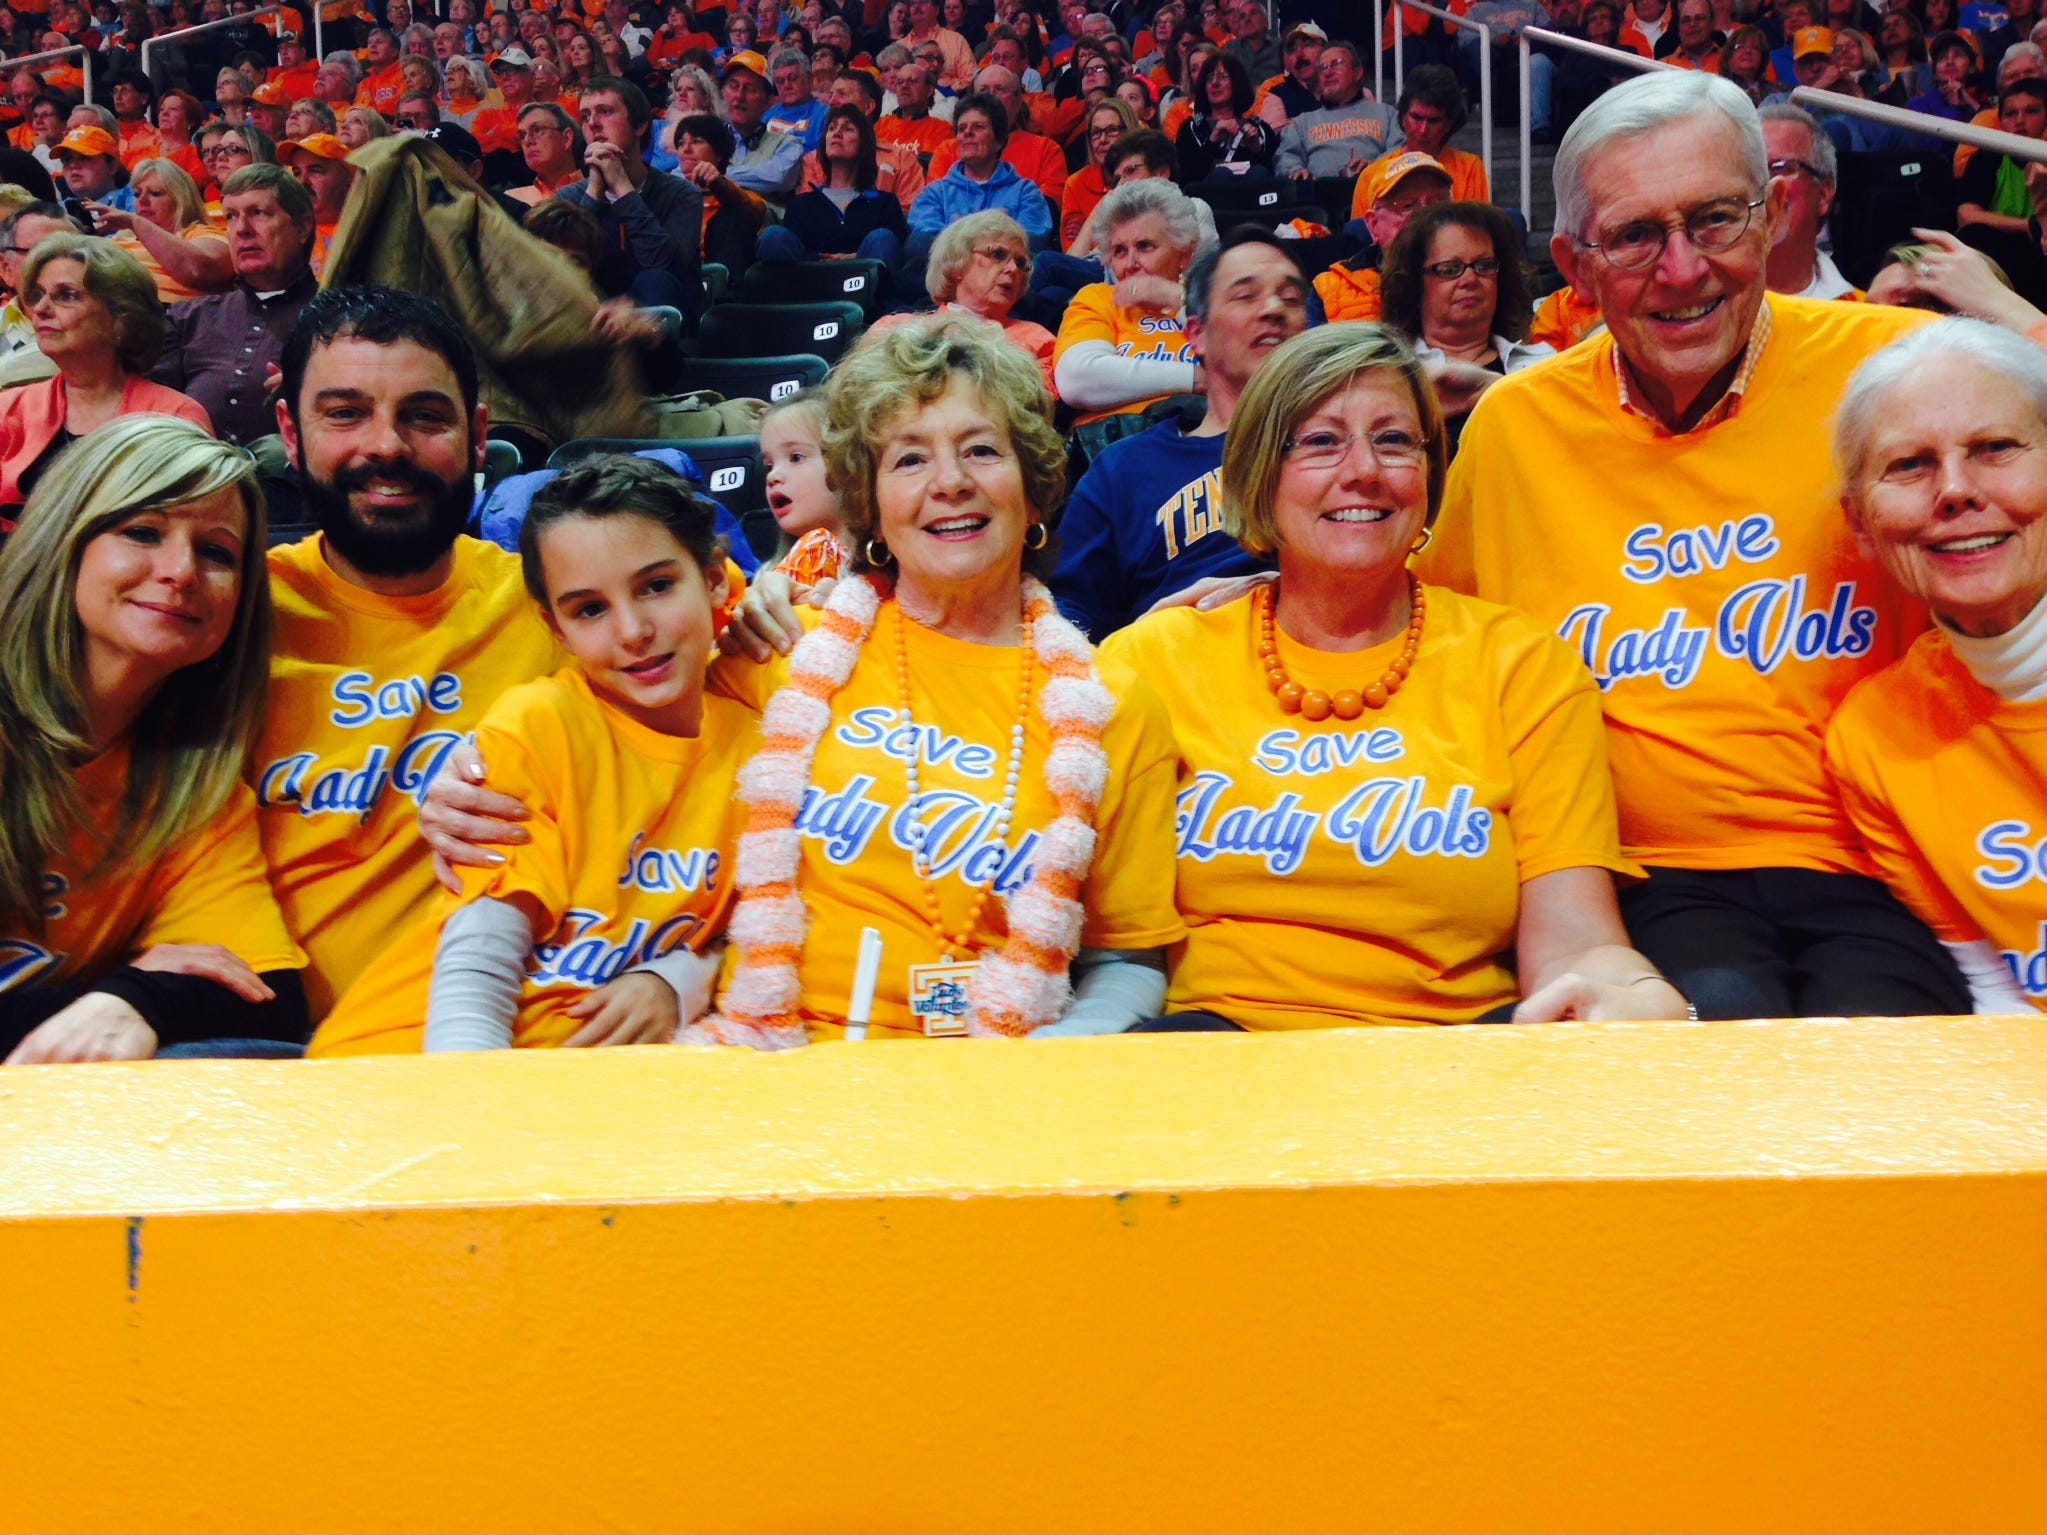 From left, Amy Robinson, small business owner and mother; Brian Robinson, landscape business owner and father; Faith Robinson, who wants to be a Lady Vol when she grows up; Dr. Sharon Lord, former UT Professor and U.S. Undersecretary of Defense; Mollie DeLozier, former UT champion swimmer and Knoxville coach; Don Sundquist, former Tennessee governor and chair of UT Board of Trustees for eight years, and Martha Sundquist, former first lady of Tennessee and Lady Vols supporter, attended the Lady Vols vs. Vanderbilt game and supported Save the Lady Vols. 2015